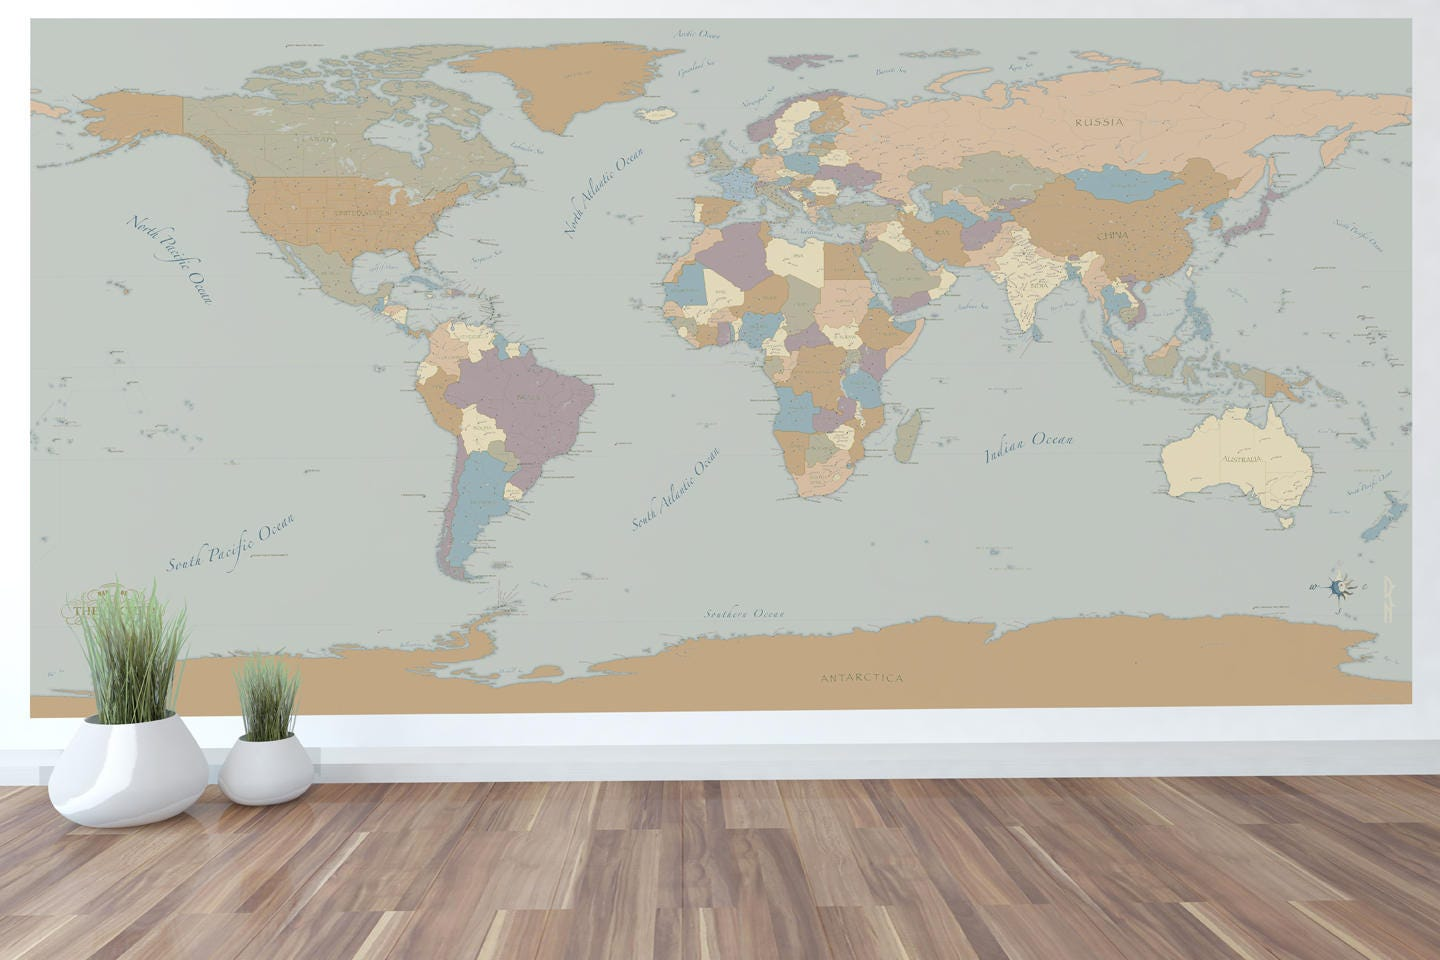 Giant world map mural wall art world map decal 59x30 or 96x48 with giant world map mural wall art world map decal 59x30 or 96x48 with beautiful colors and cities gumiabroncs Gallery